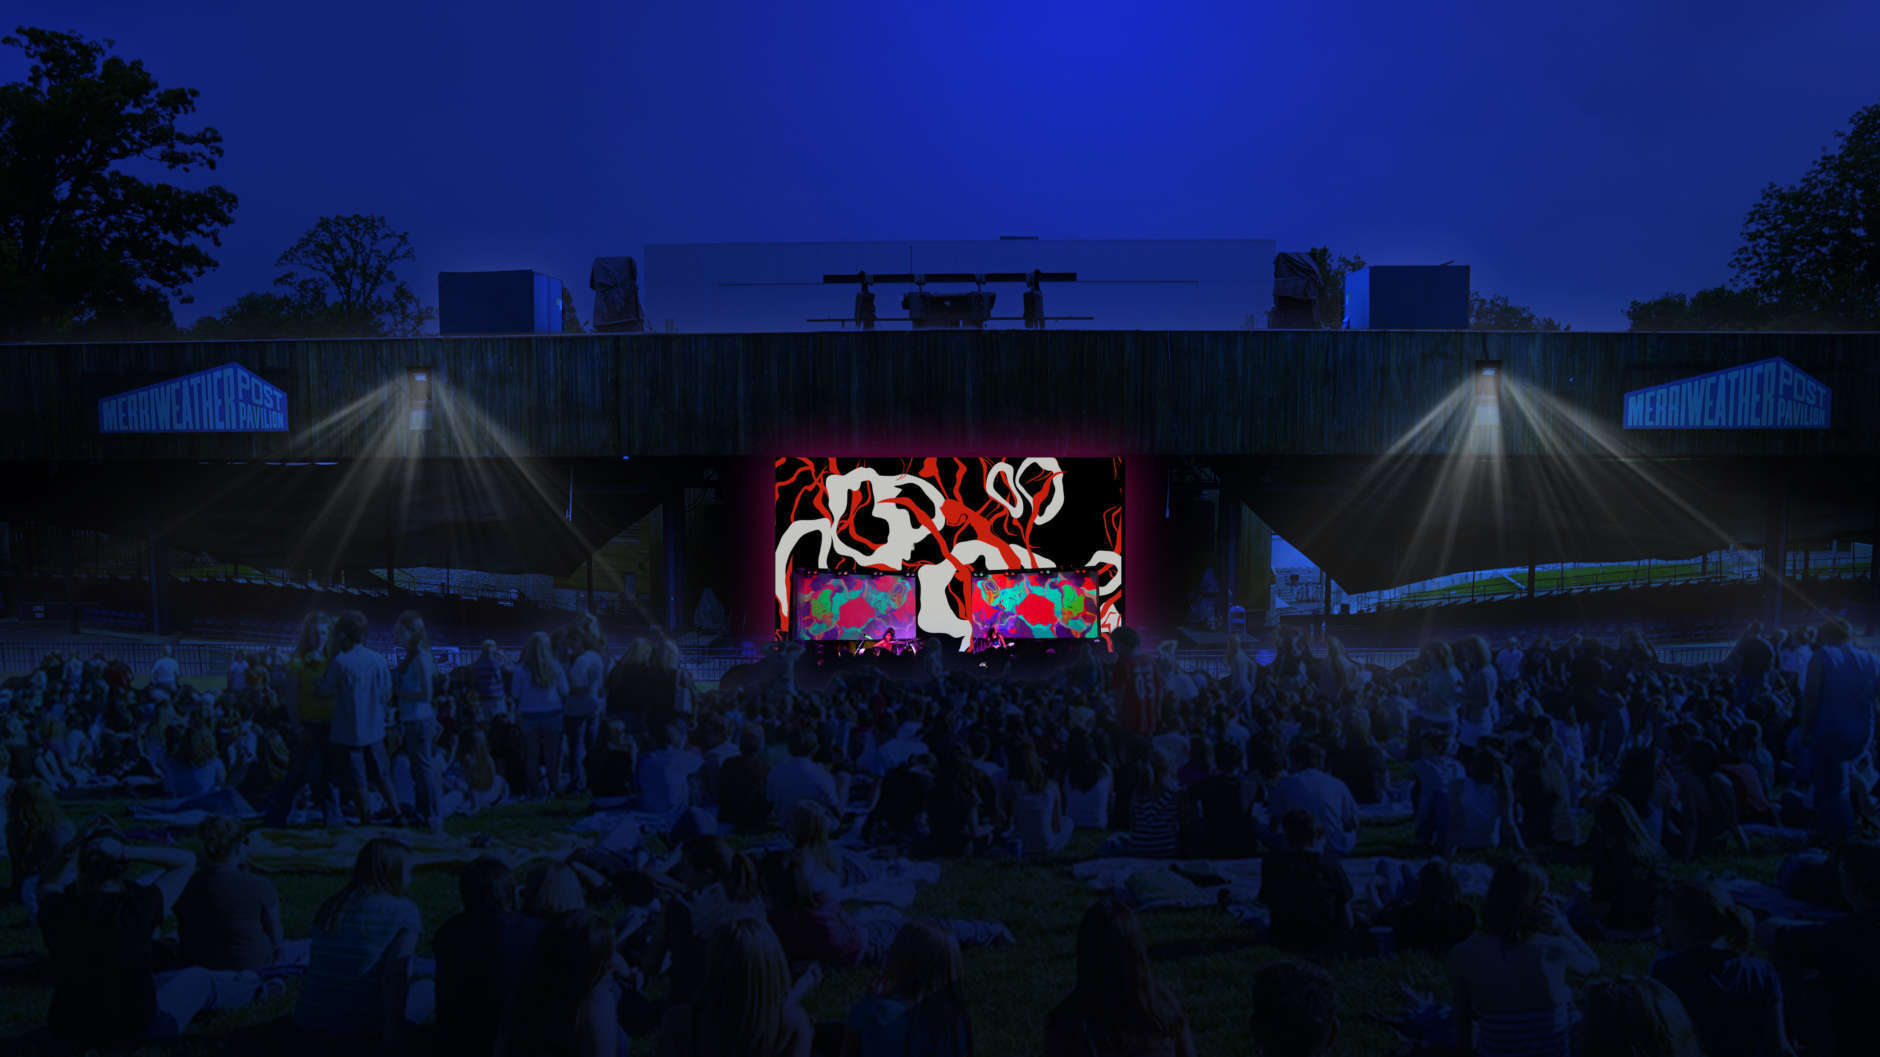 The tree-filled space around Merriweather Post Pavilion offers greater creative potential to artists who already think outside the figurative box, saidKen Farmer of Wild Dogs International,OPUS 1's curator and producer.(Rendering courtesy of Wild Dogs International)